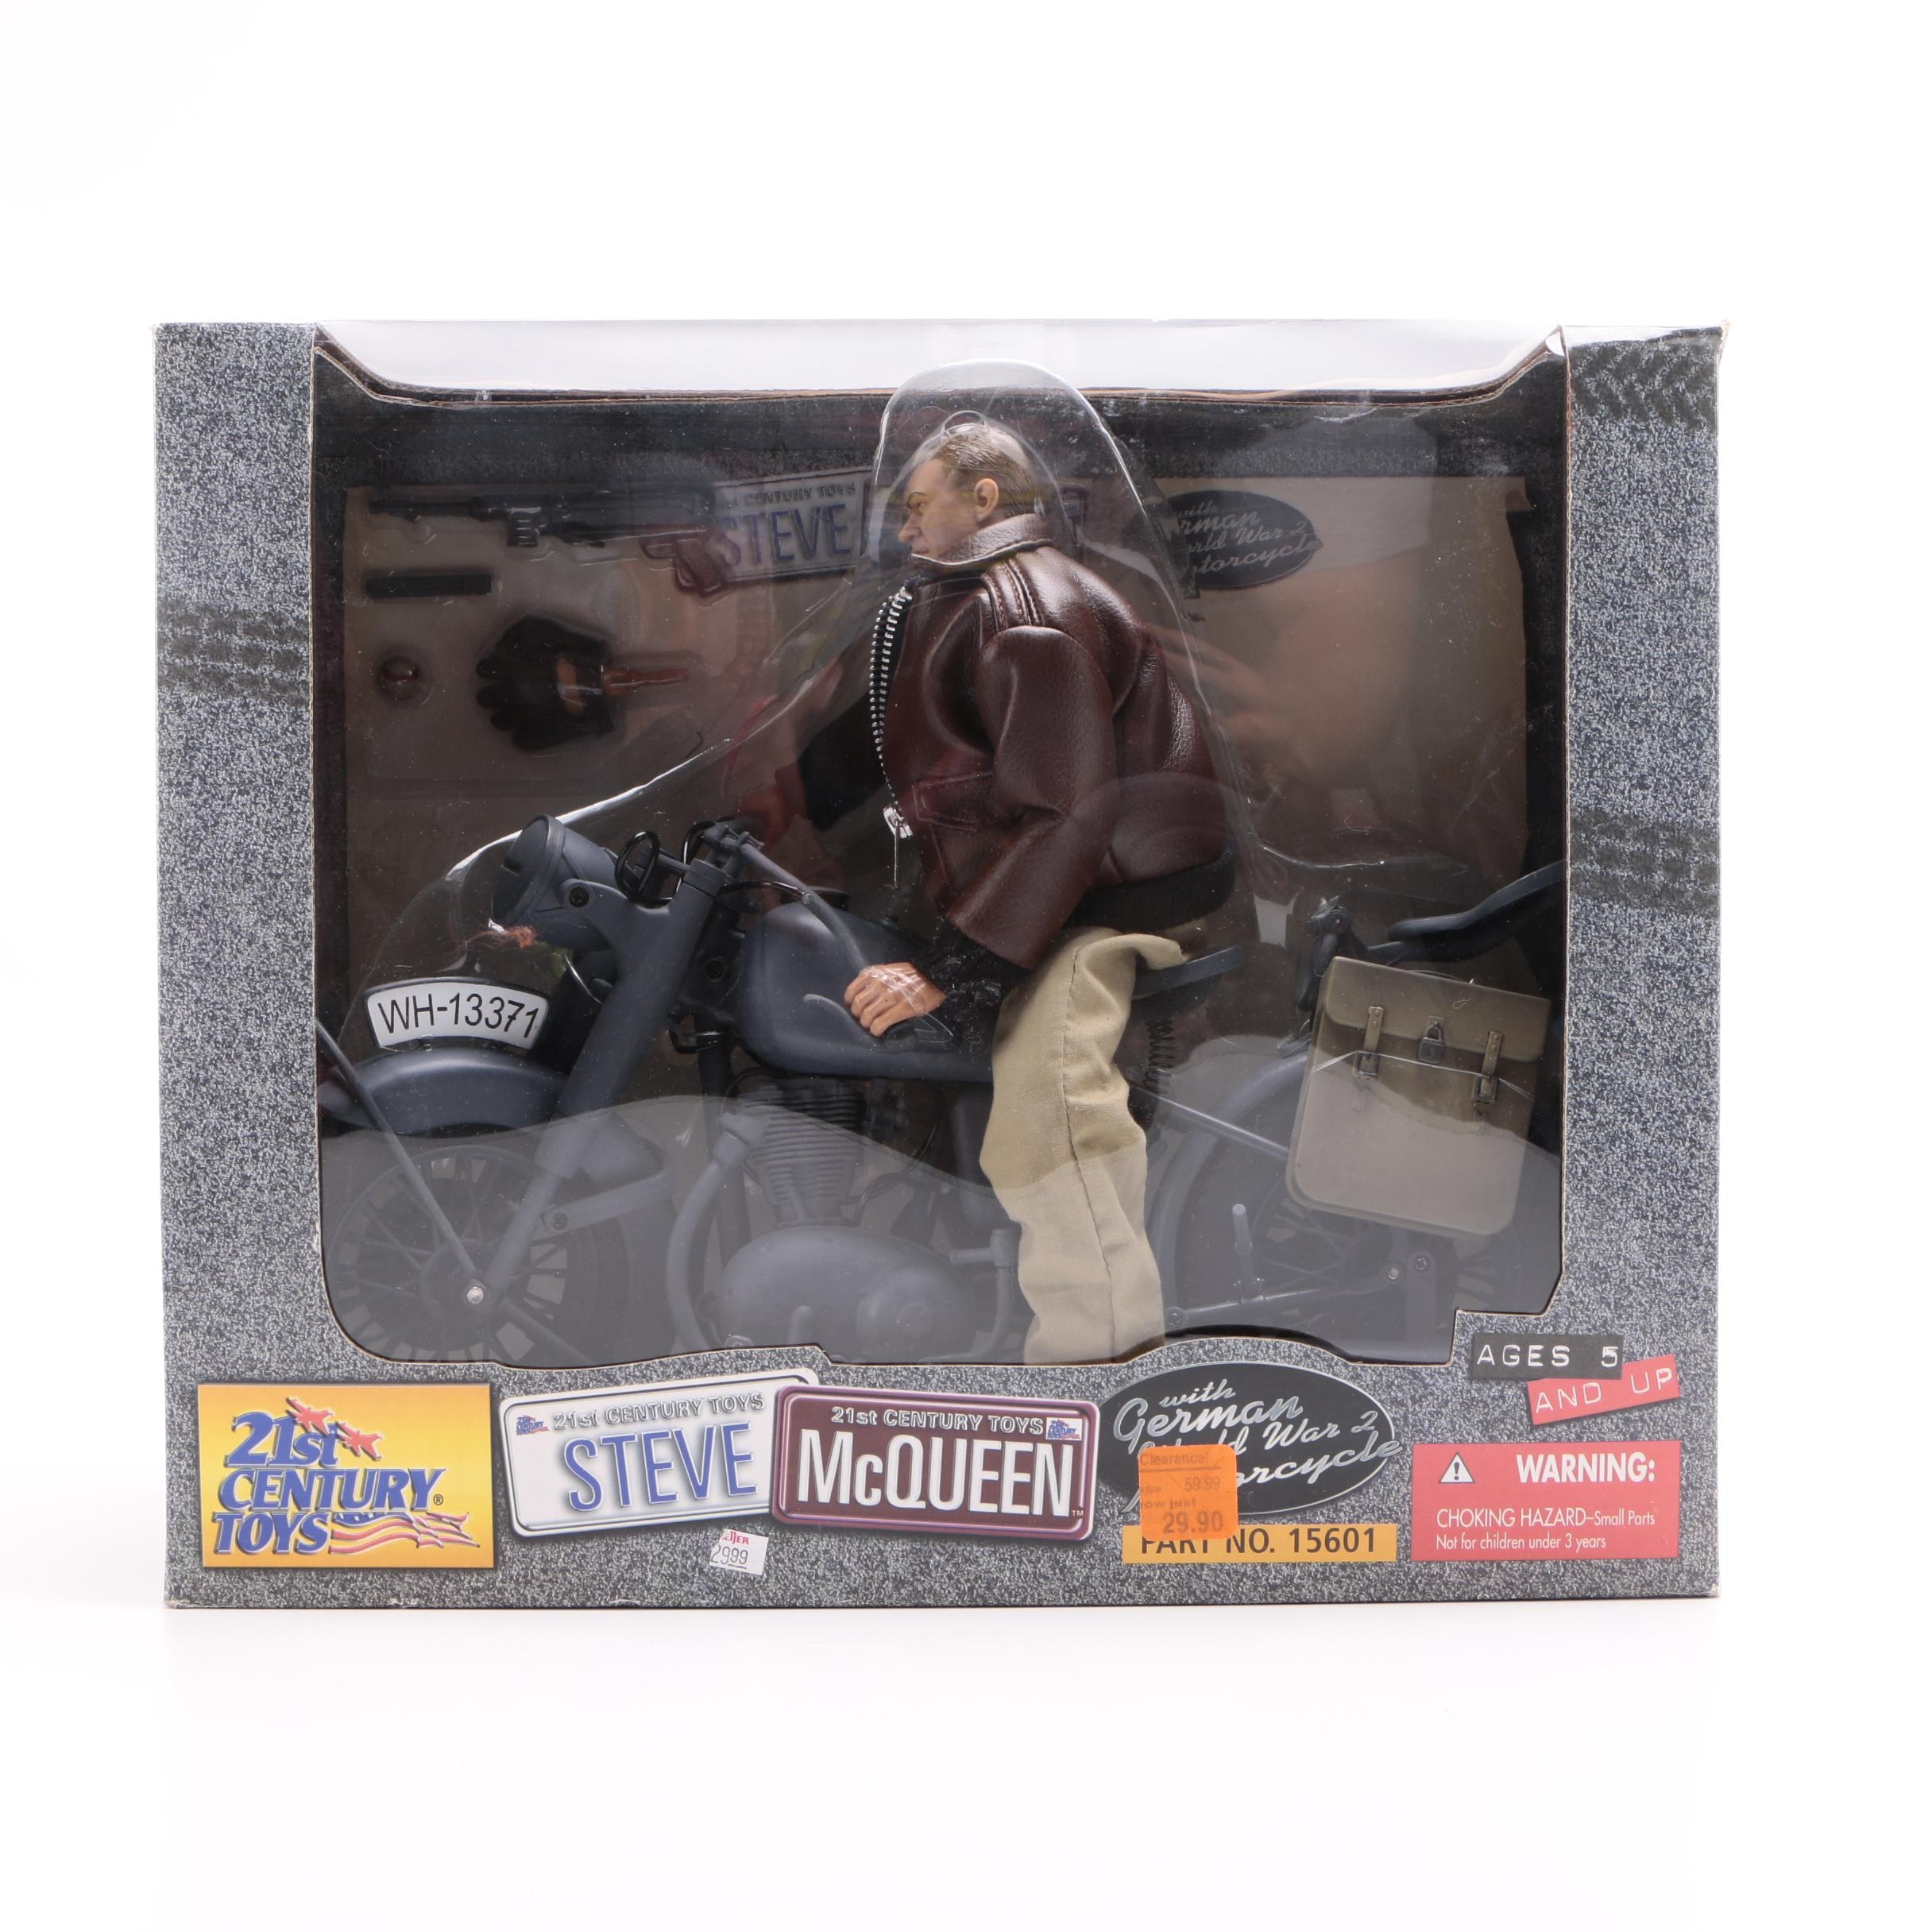 Steve McQueen Action Figure with Motorcycle by 21st Century Toys